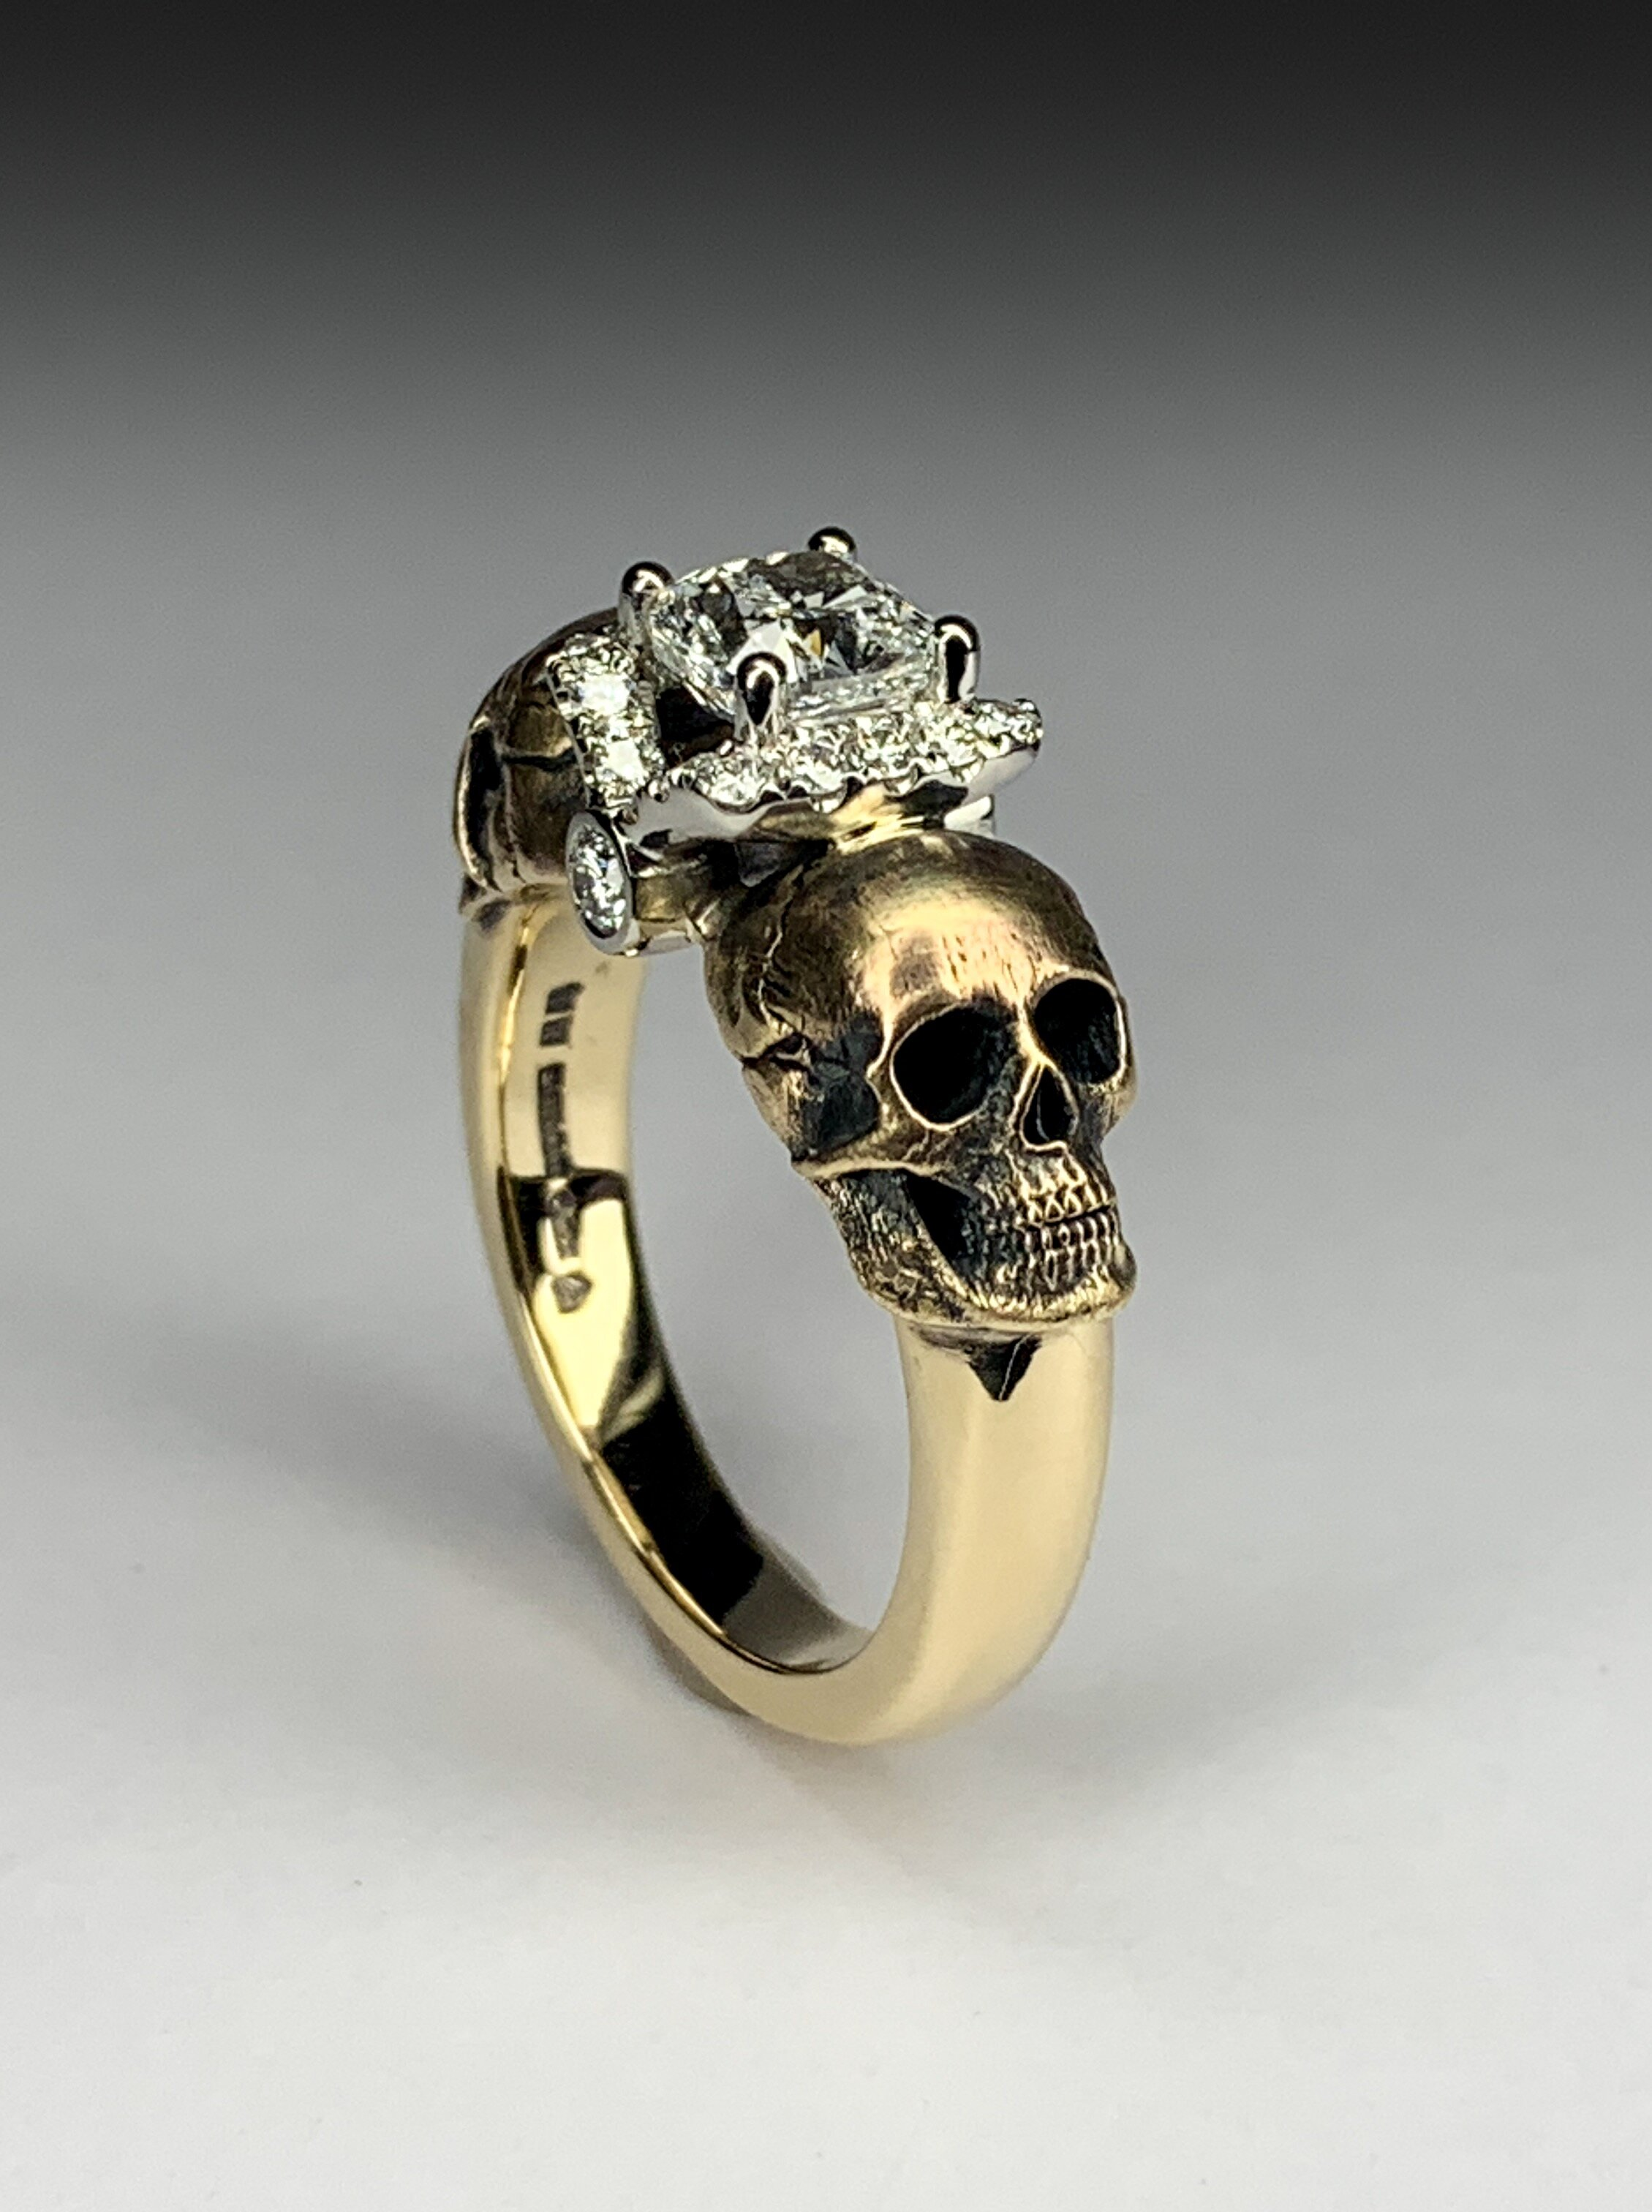 A gold and platinum skull ring made with customers own diamonds. Made in Chichester, England.